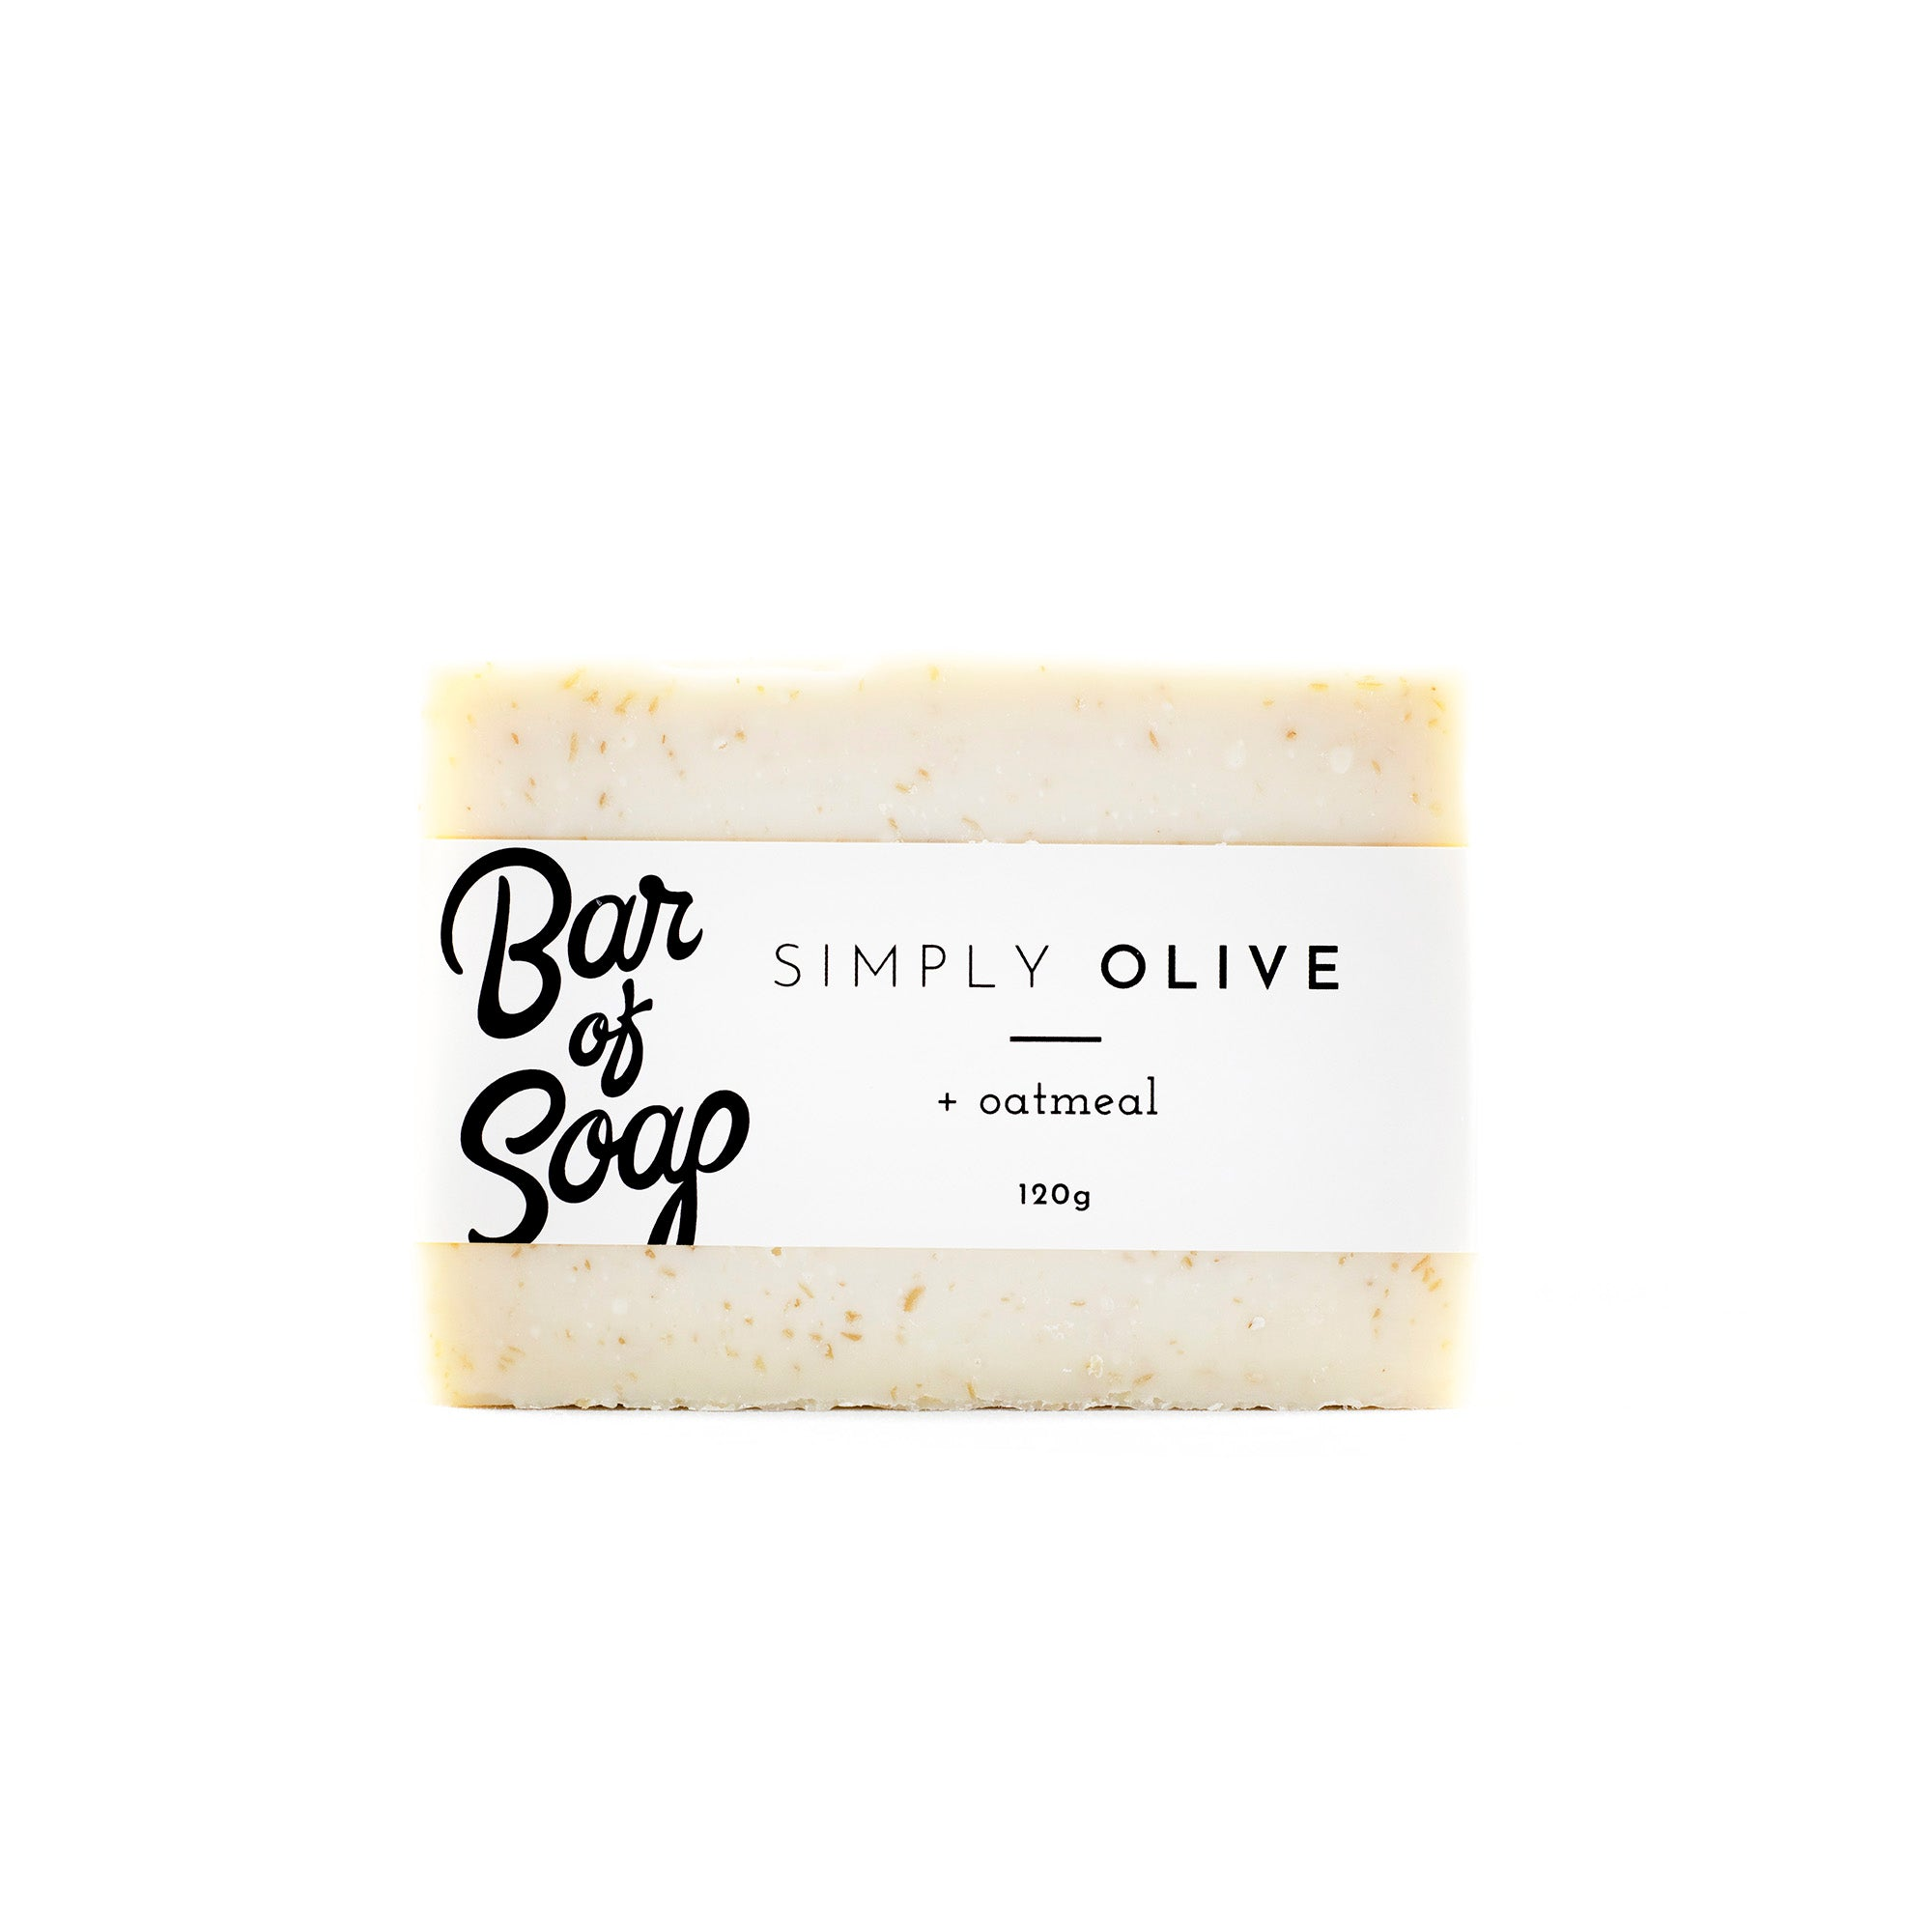 A simple and white pure olive oil bar of soap with little speck of oatmeal throughout. The bar is wrapped with a Simply Olive + Oatmeal Bar of Soap label.